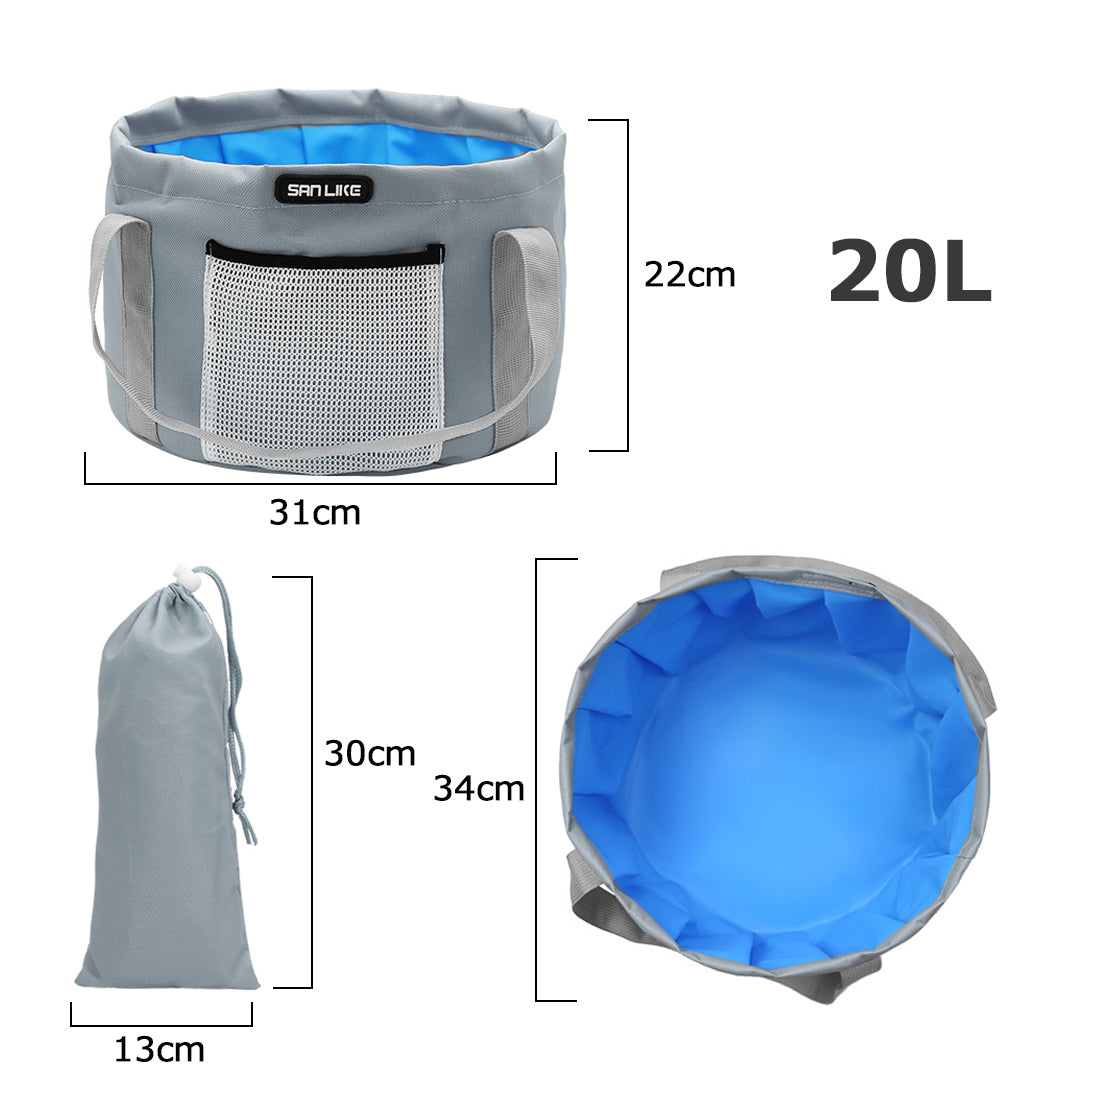 SANLIKE Waterproof Folding Fishing Bucket Small Foot Basin Travel Outdoor Car Washing Disaster Prevention Camp Storage Bag Outdoor Cooler